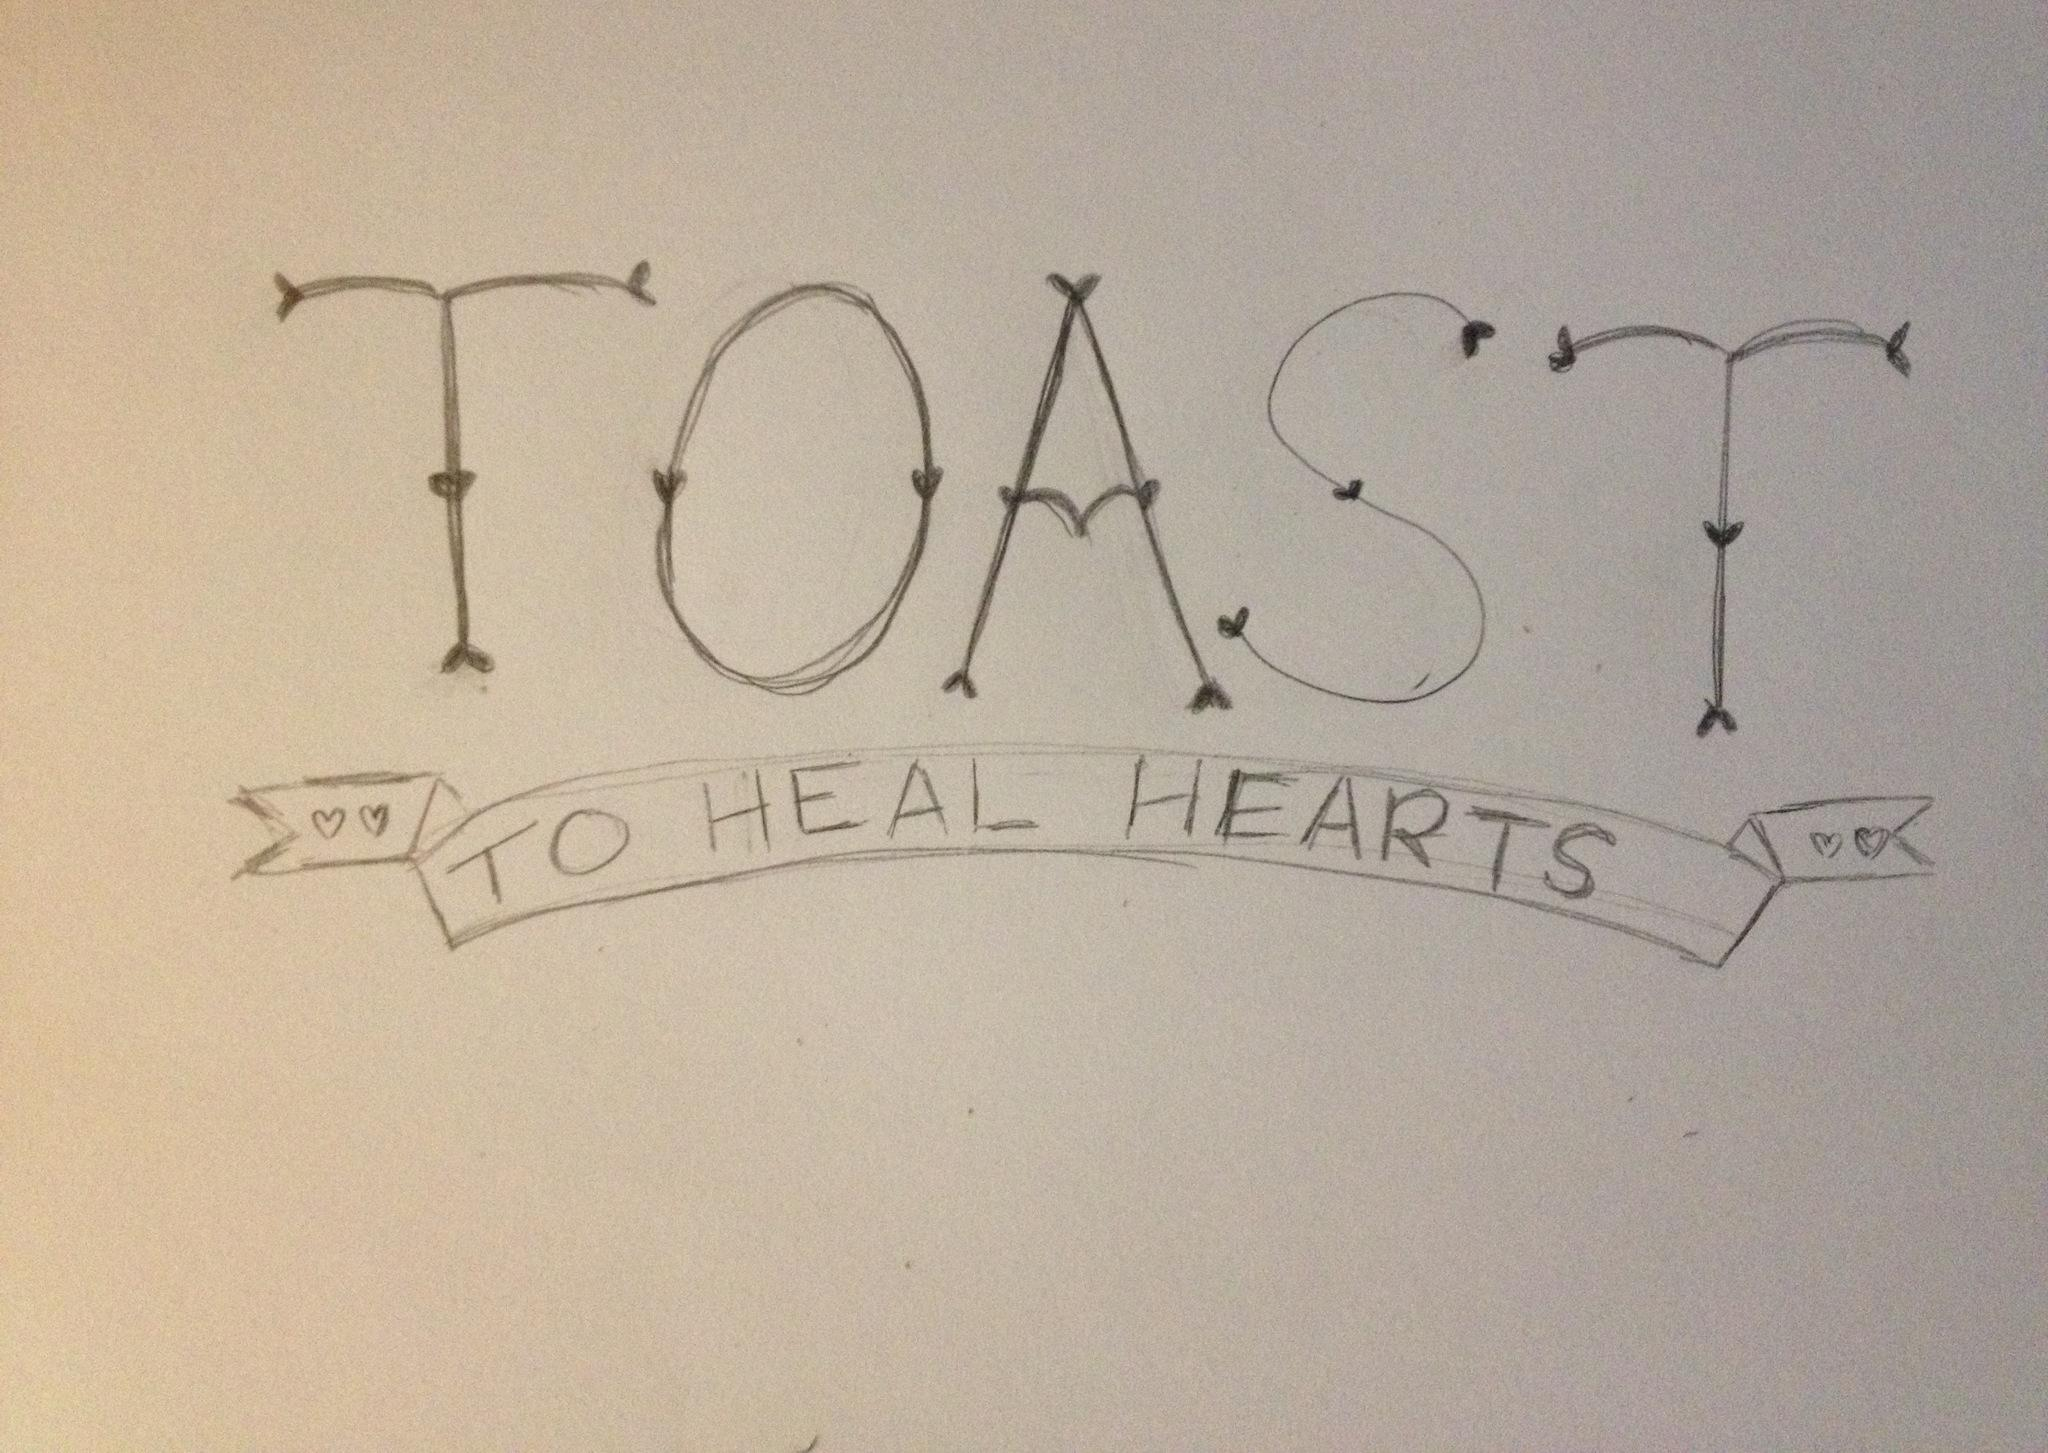 Toast to Heal Hearts - image 1 - student project